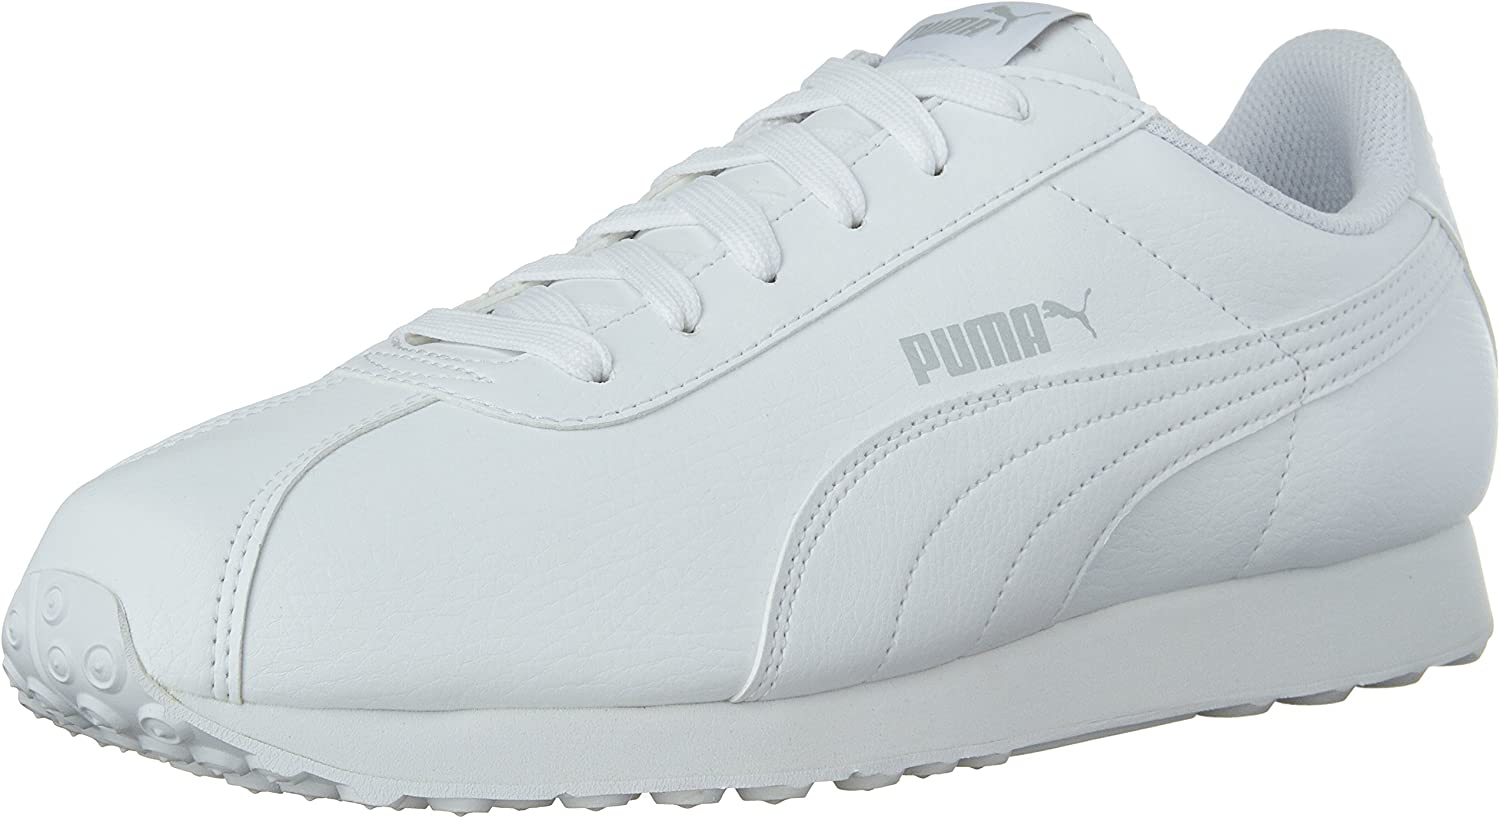 PUMA Men's Turin Fashion Sneaker